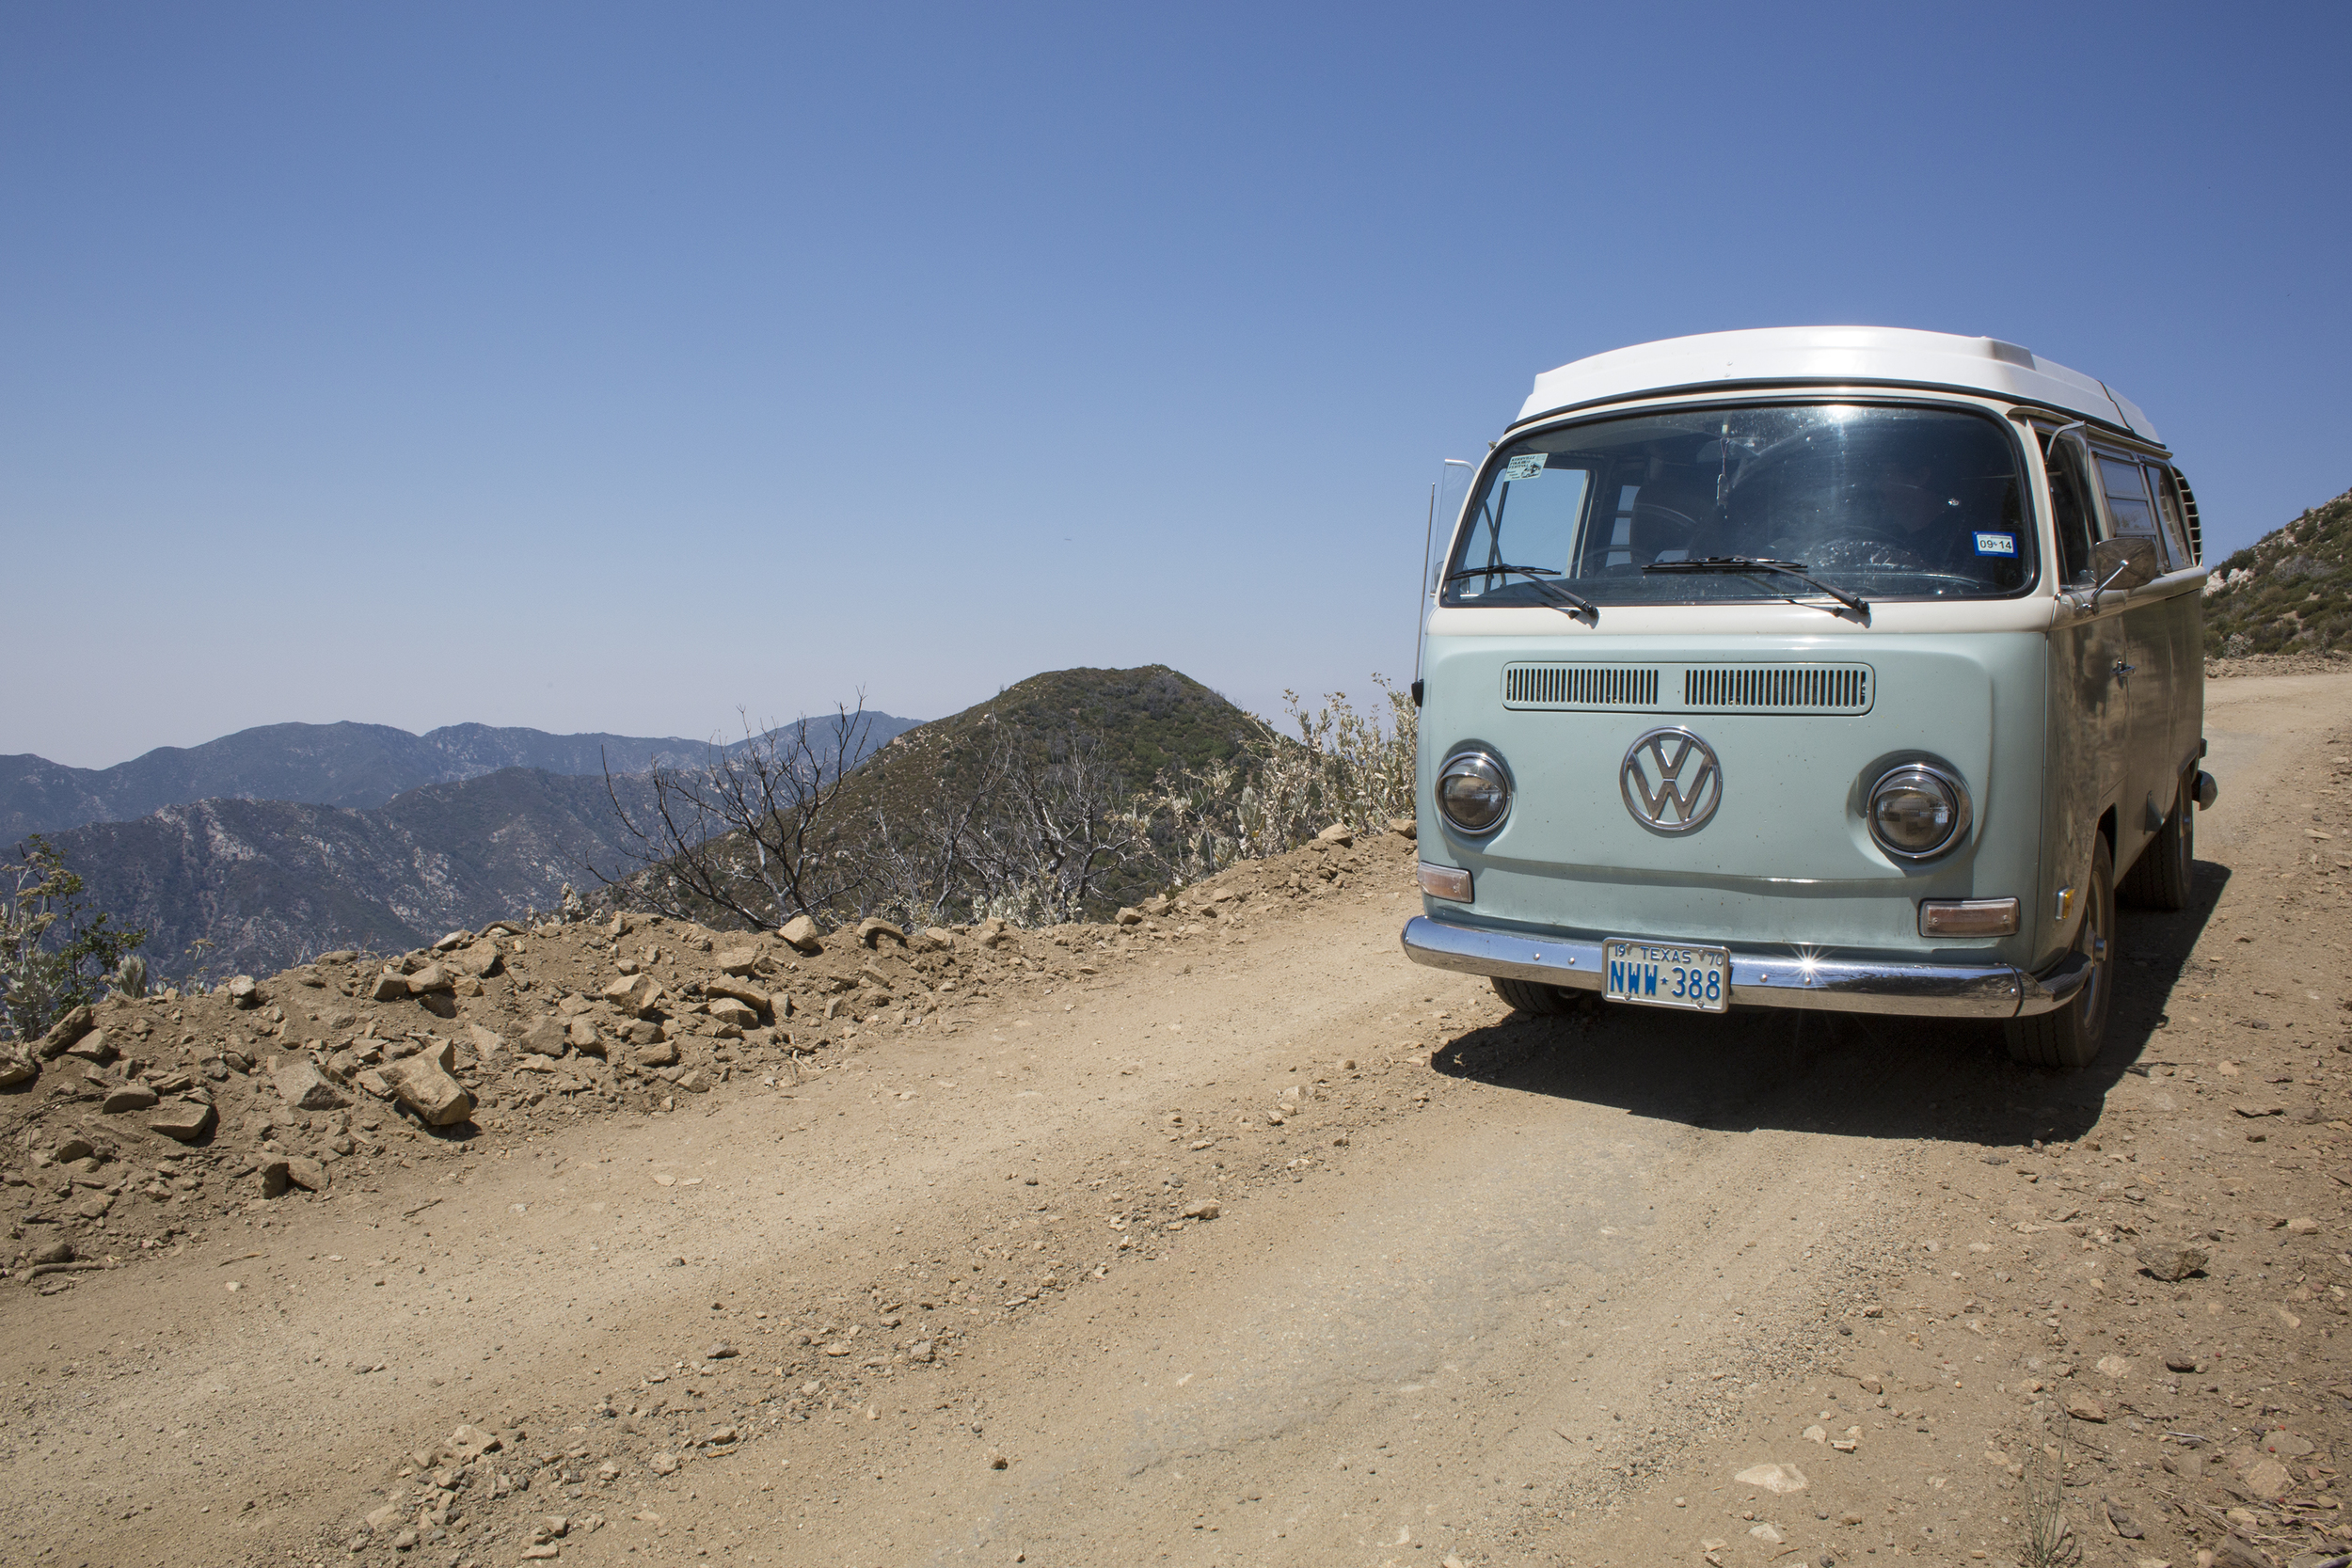 Bus Travels. VW Community. Freedom and Adventure.